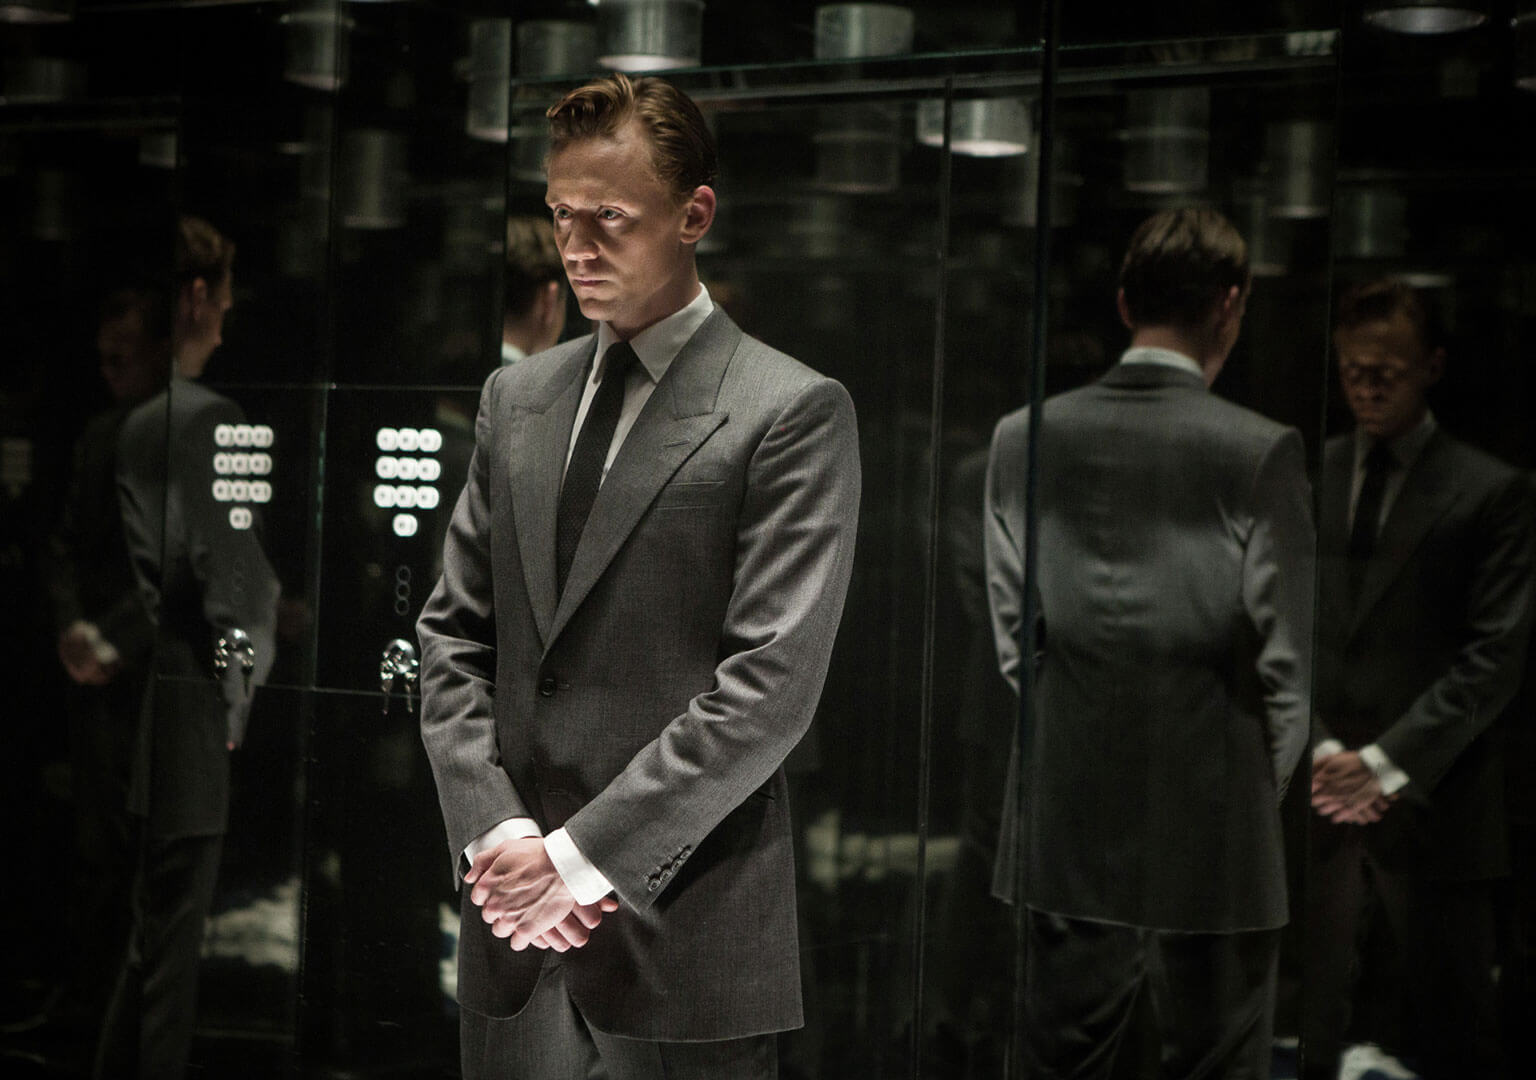 Video still from High-Rise